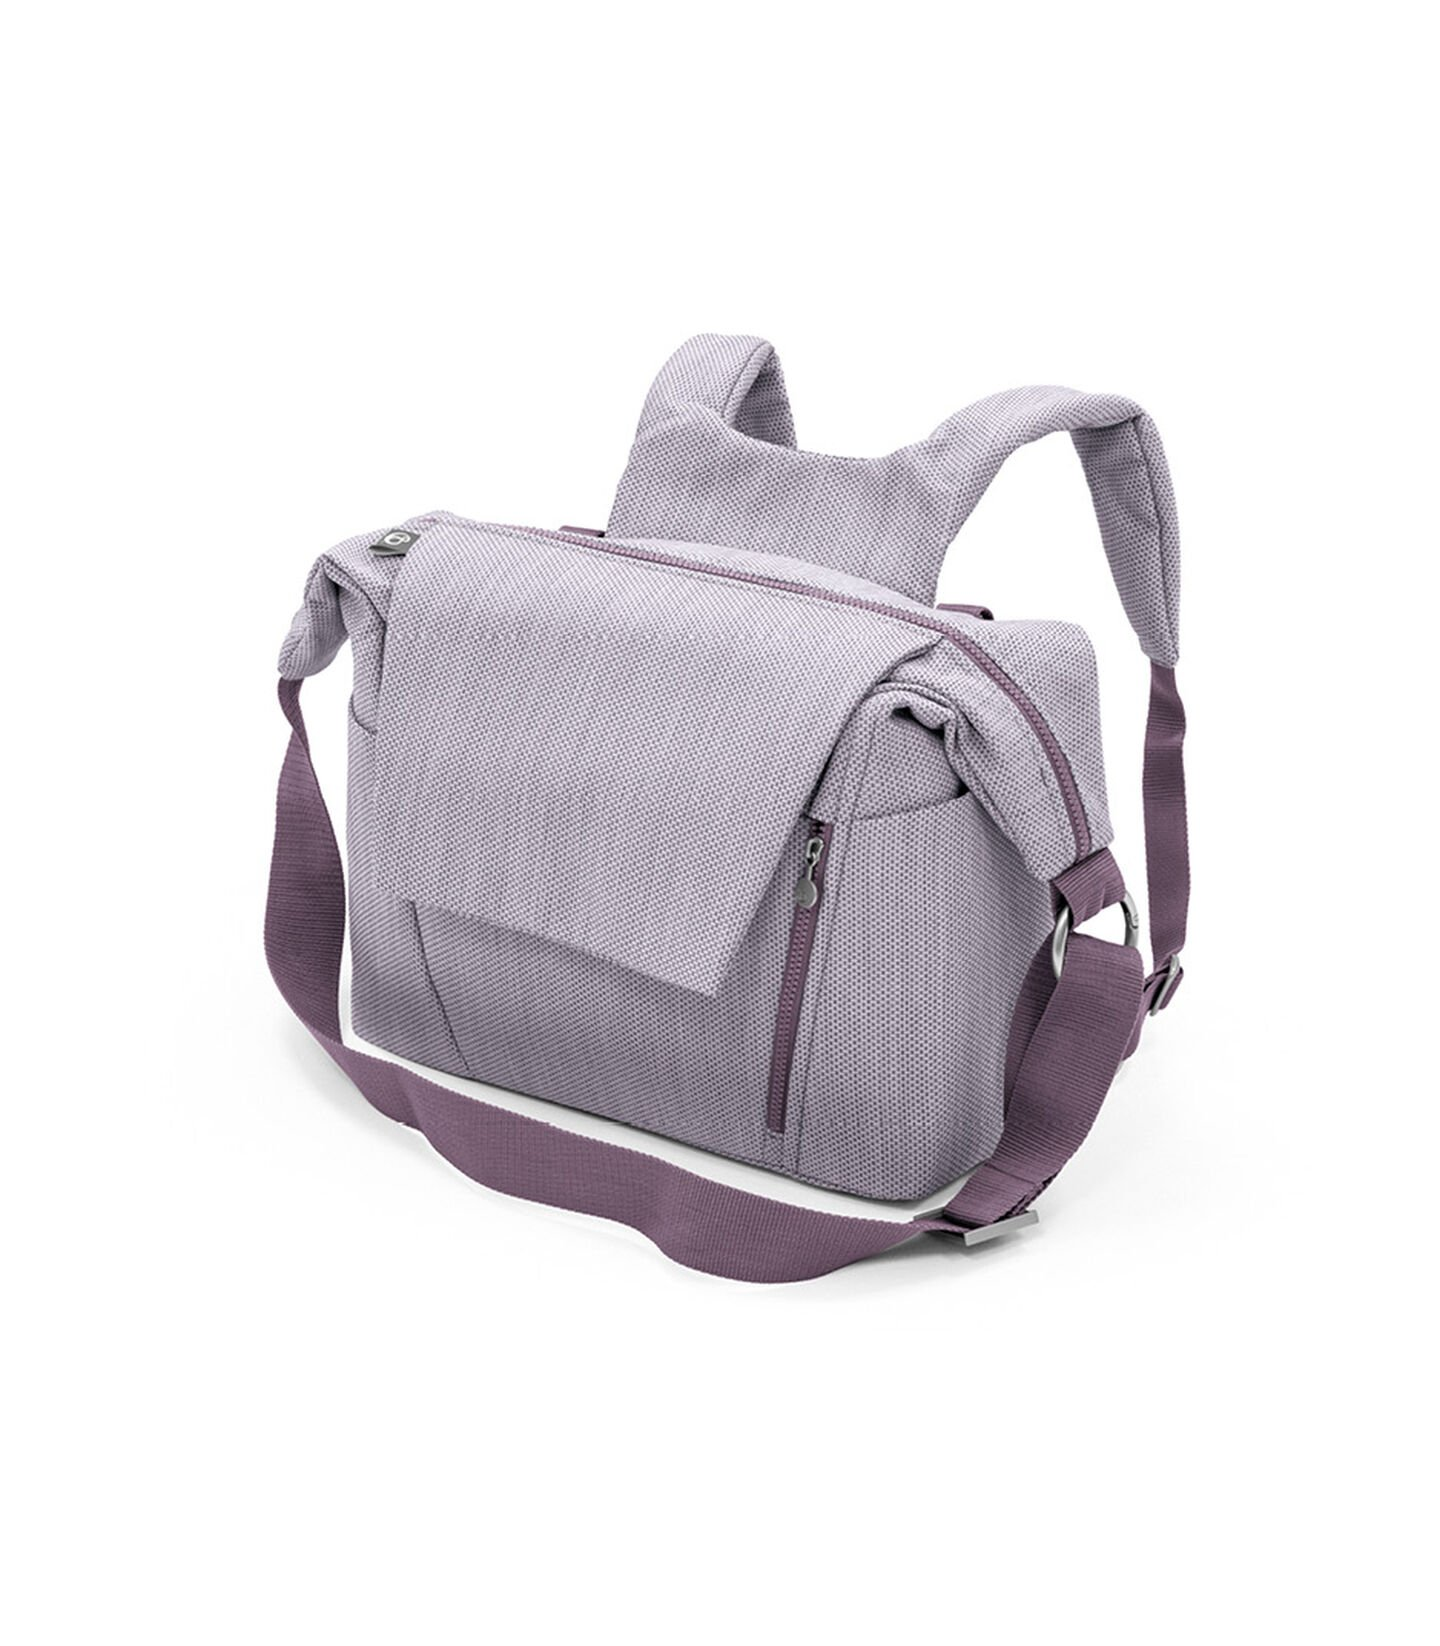 Stokke® Changing bag Brushed Lilac, Сиреневый твид, mainview view 2